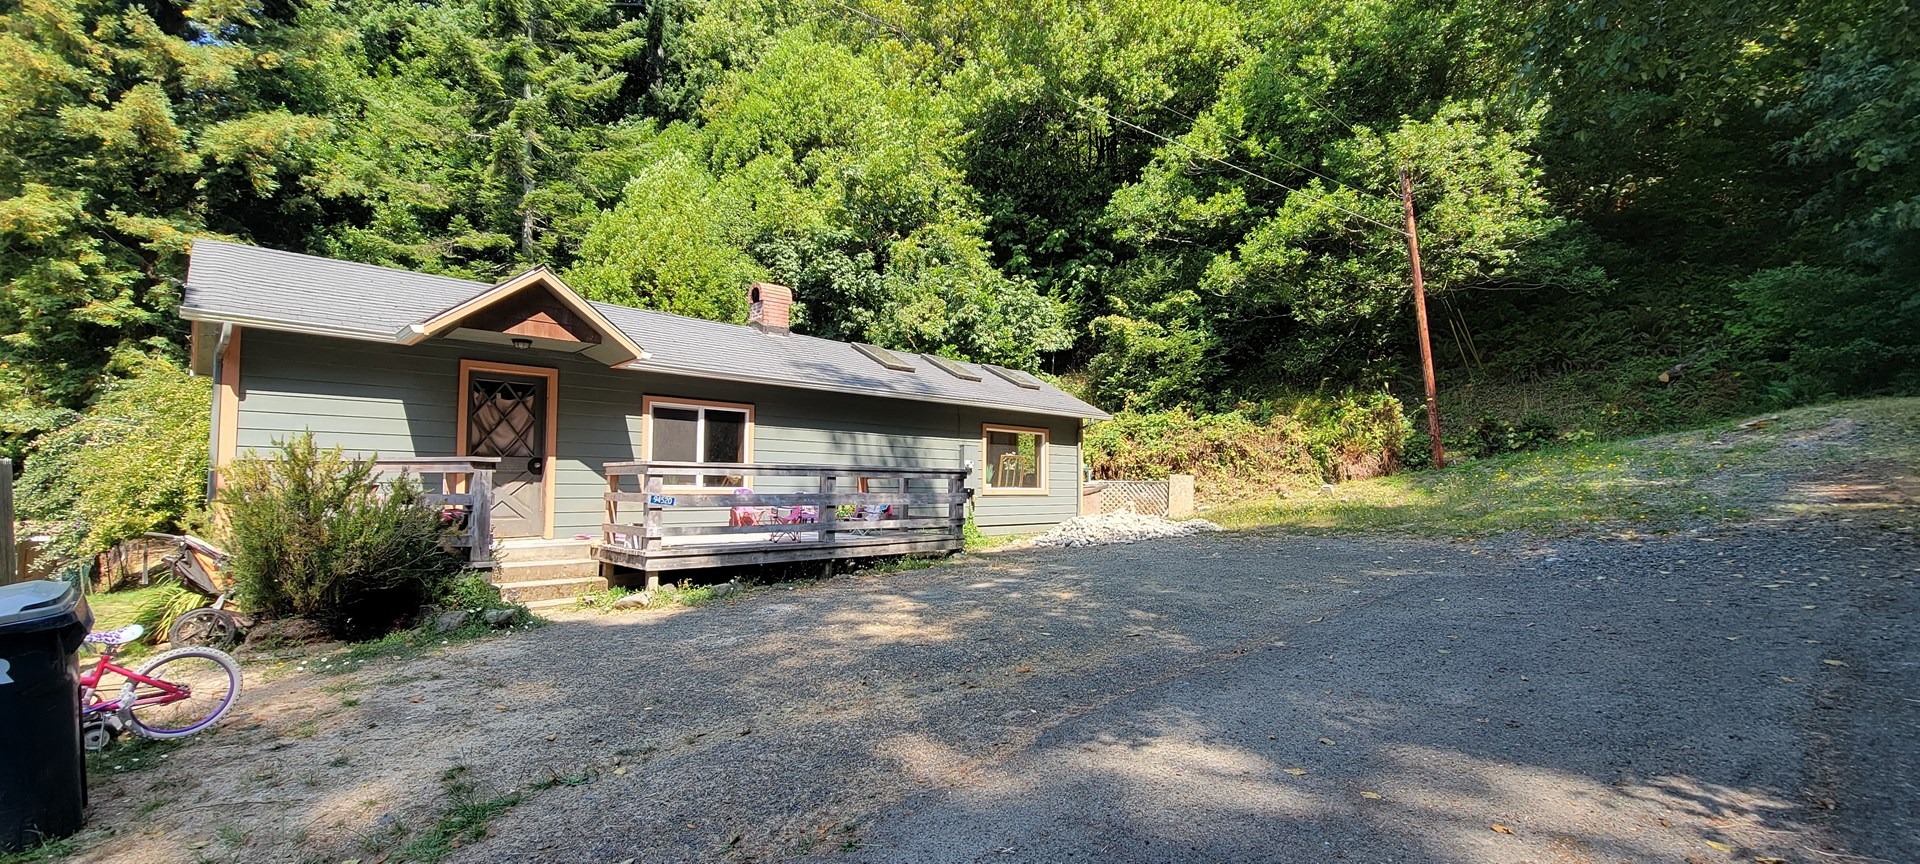 Investment Property for Sale Gold Beach, OR